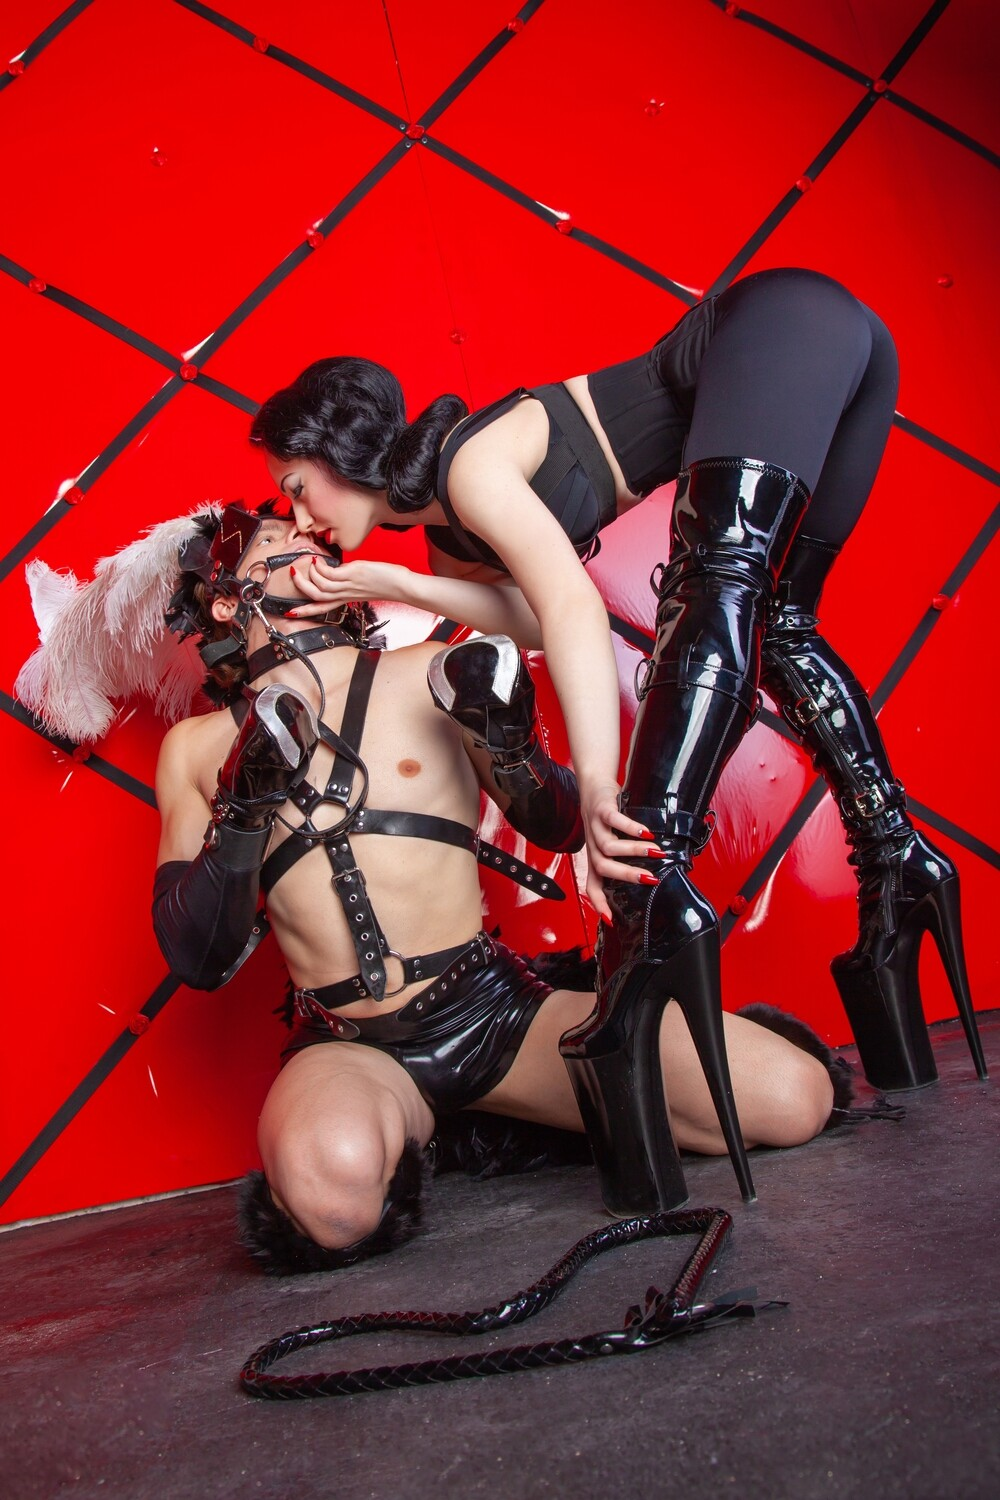 Kinky Xmas in Berlin